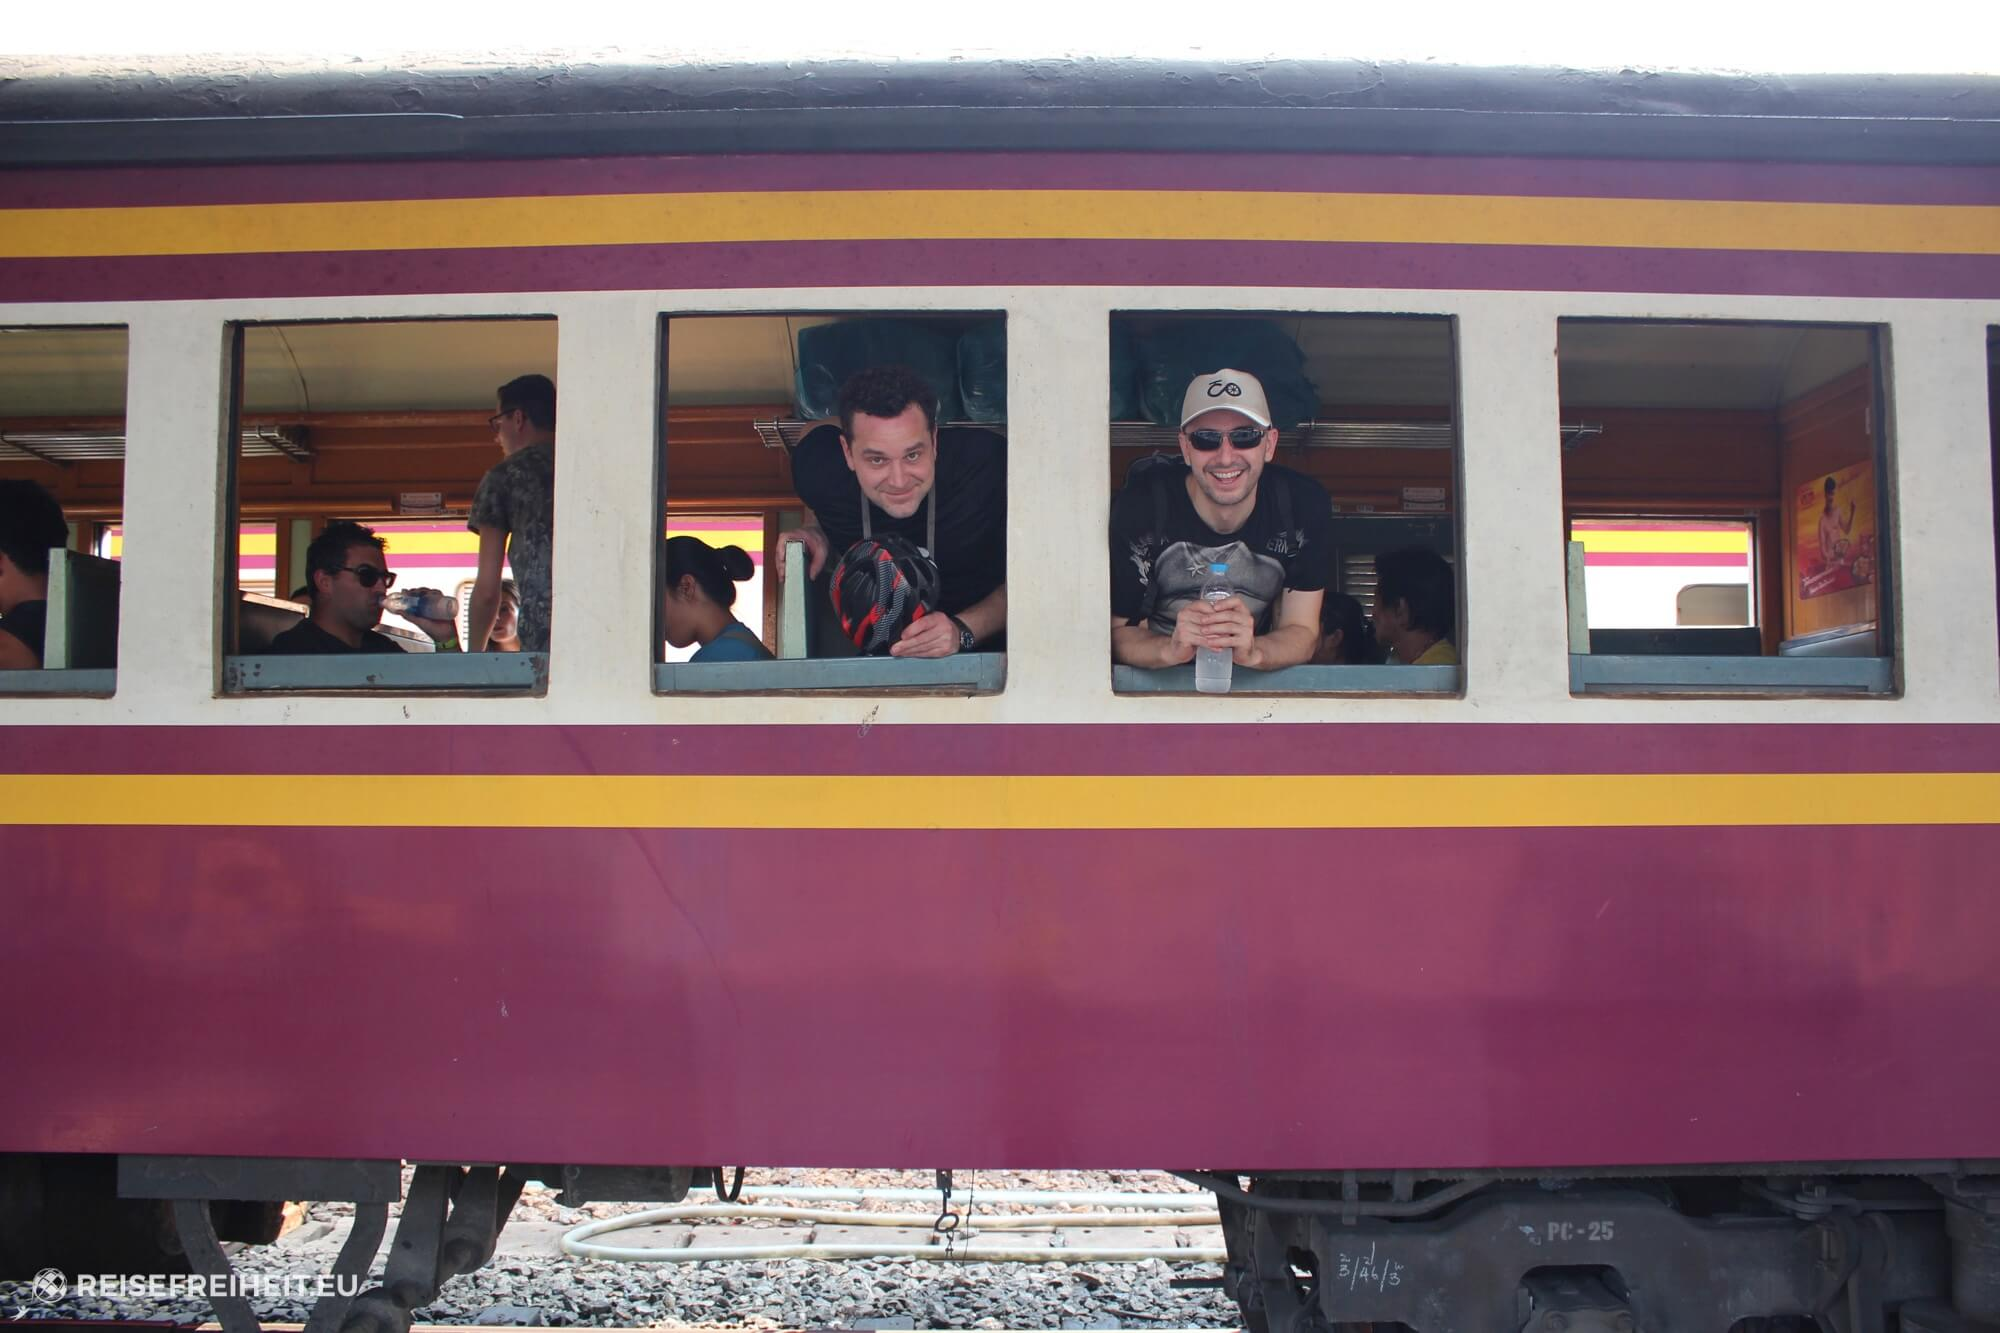 thailand-bangkok-radtour-covankessel-train-start-biking